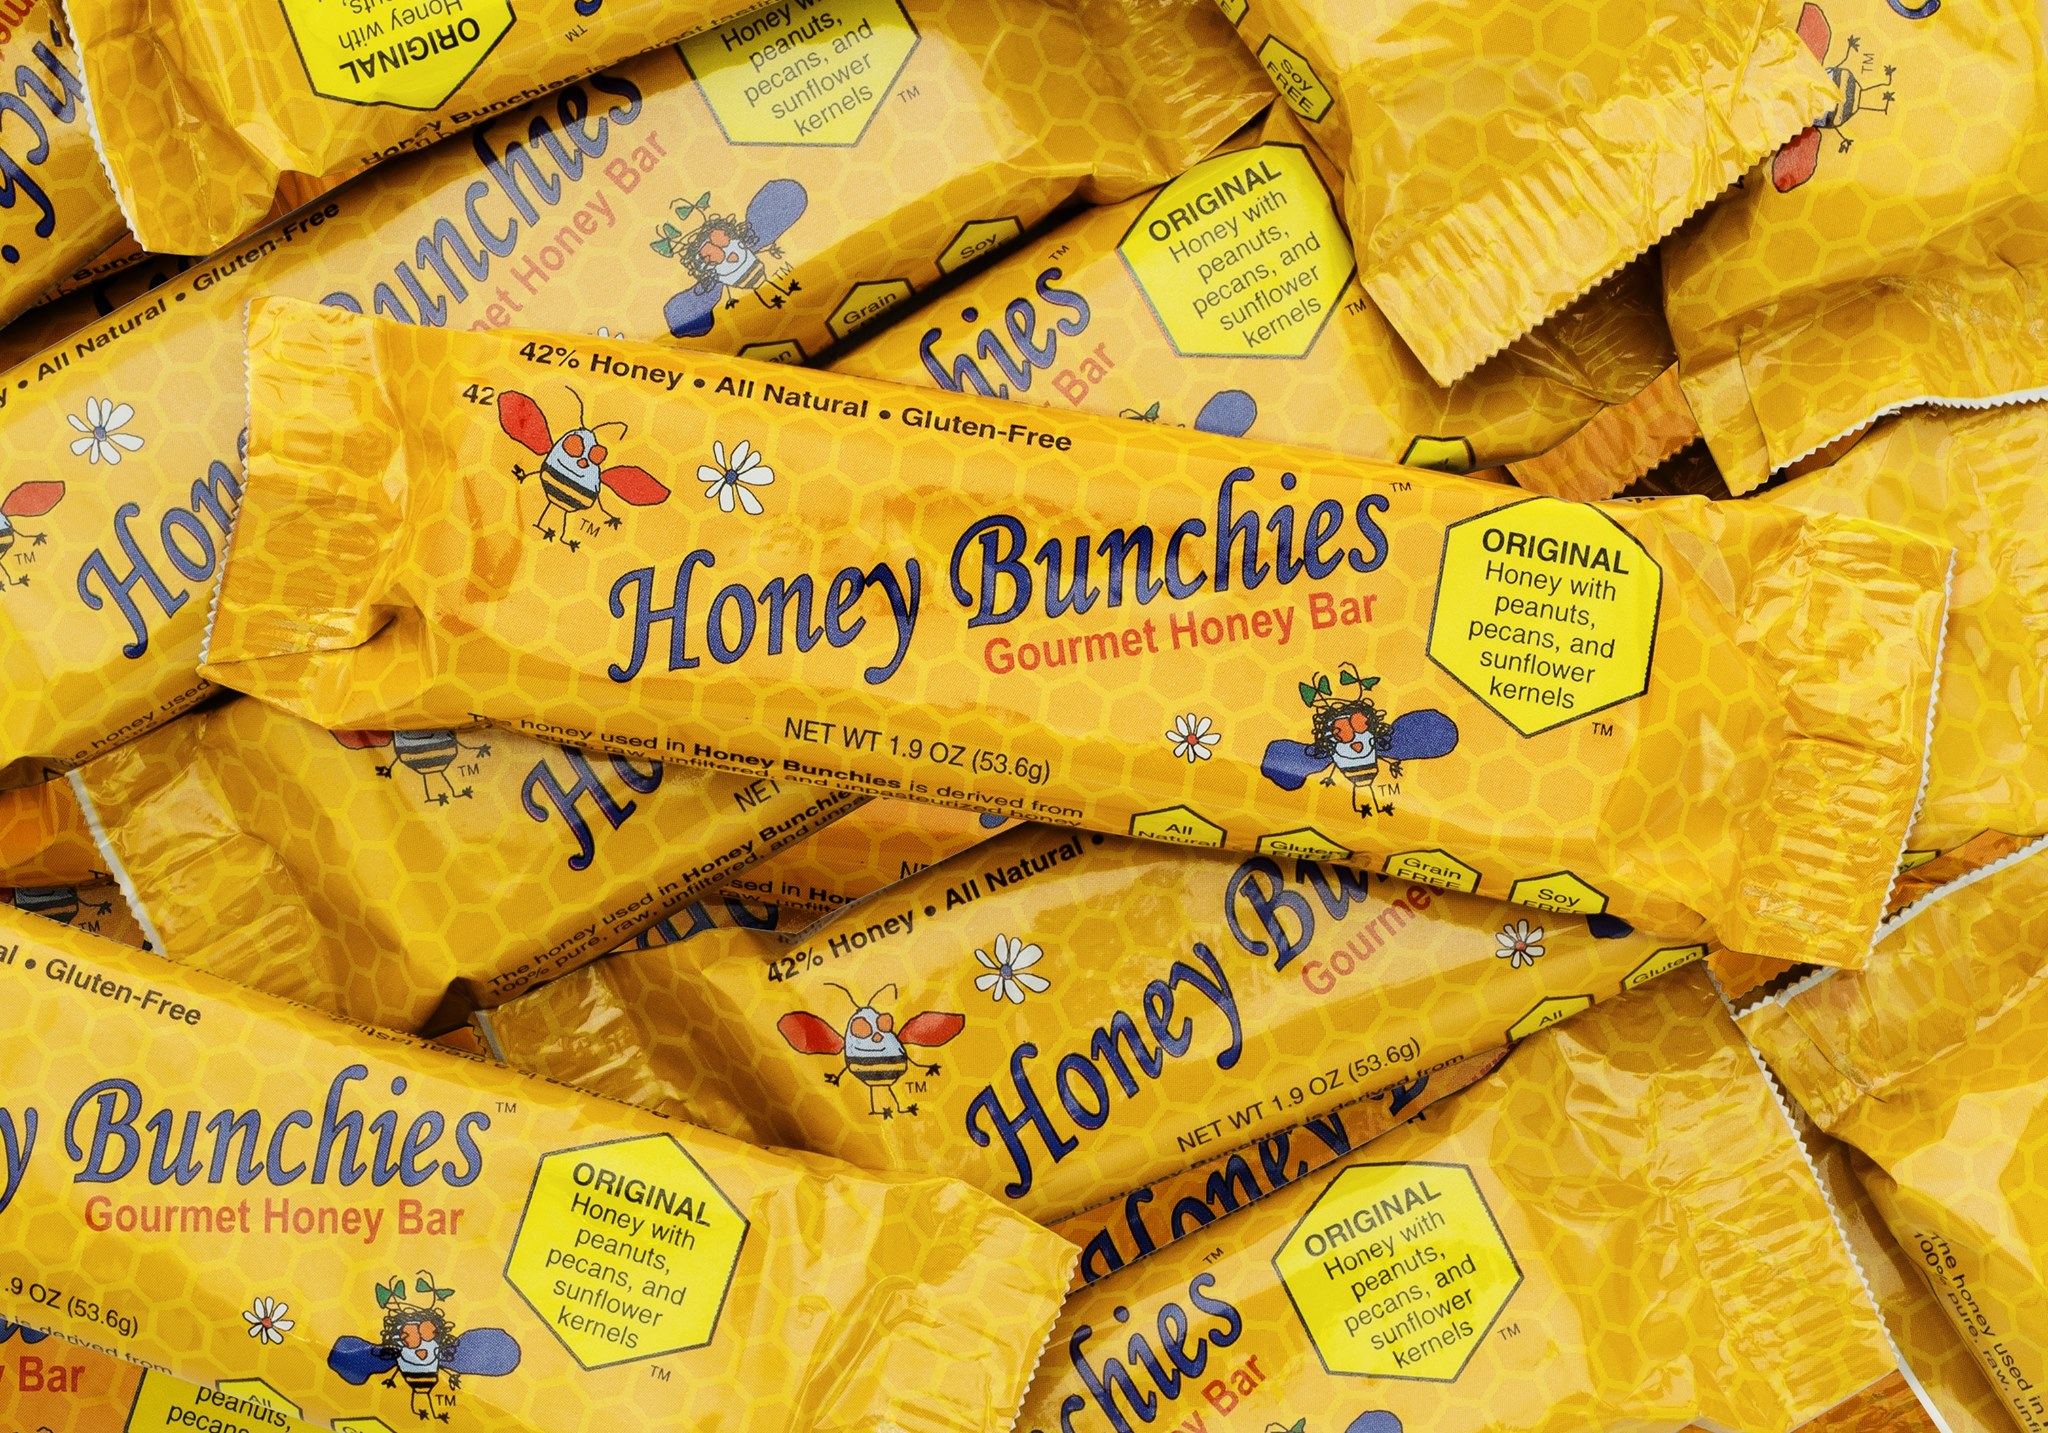 Honey Bunchies Energy Bar